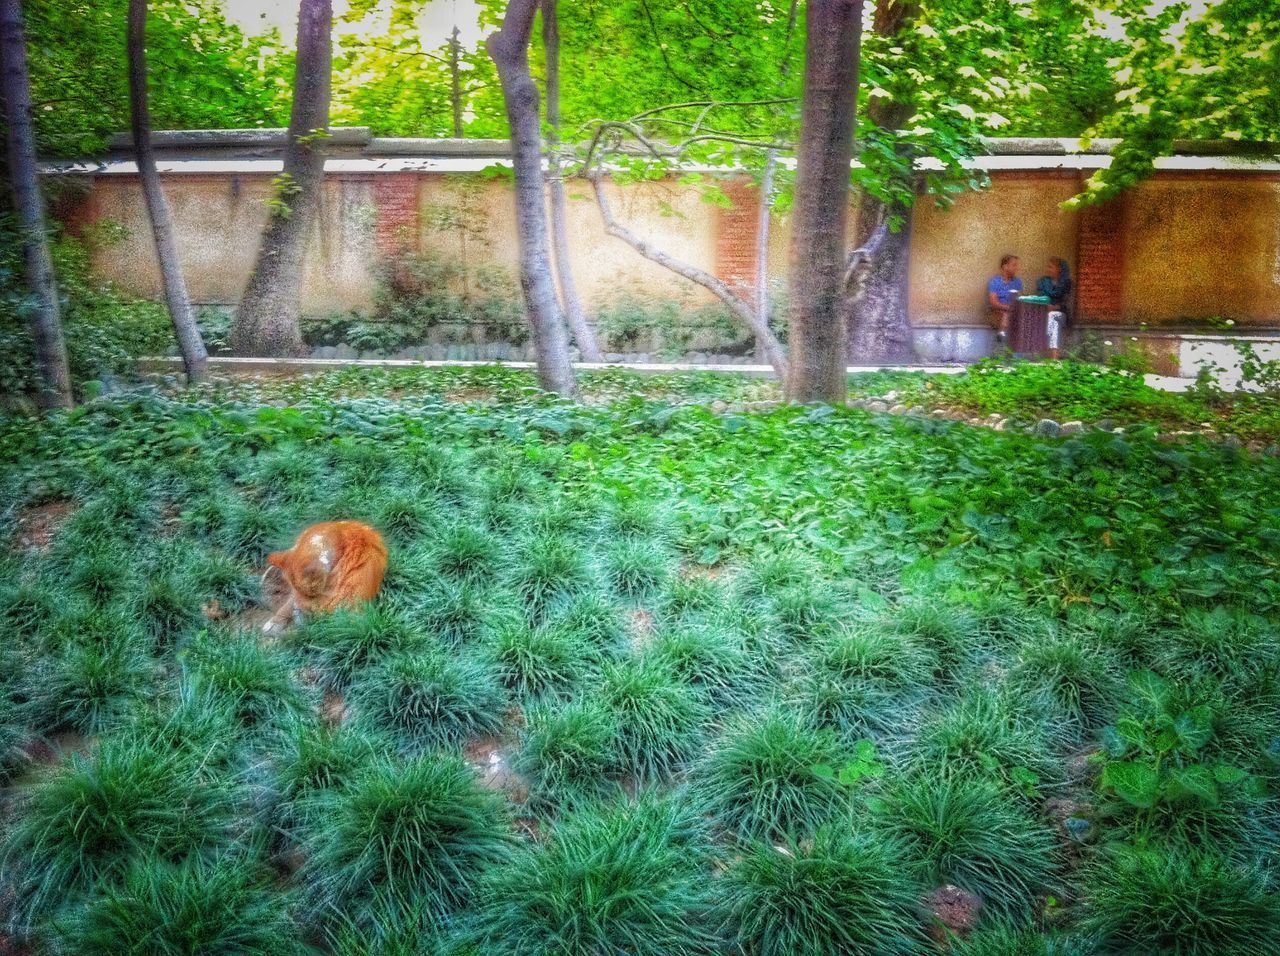 grass, growth, tree, animal themes, green color, nature, field, day, no people, outdoors, plant, beauty in nature, mammal, domestic animals, bird